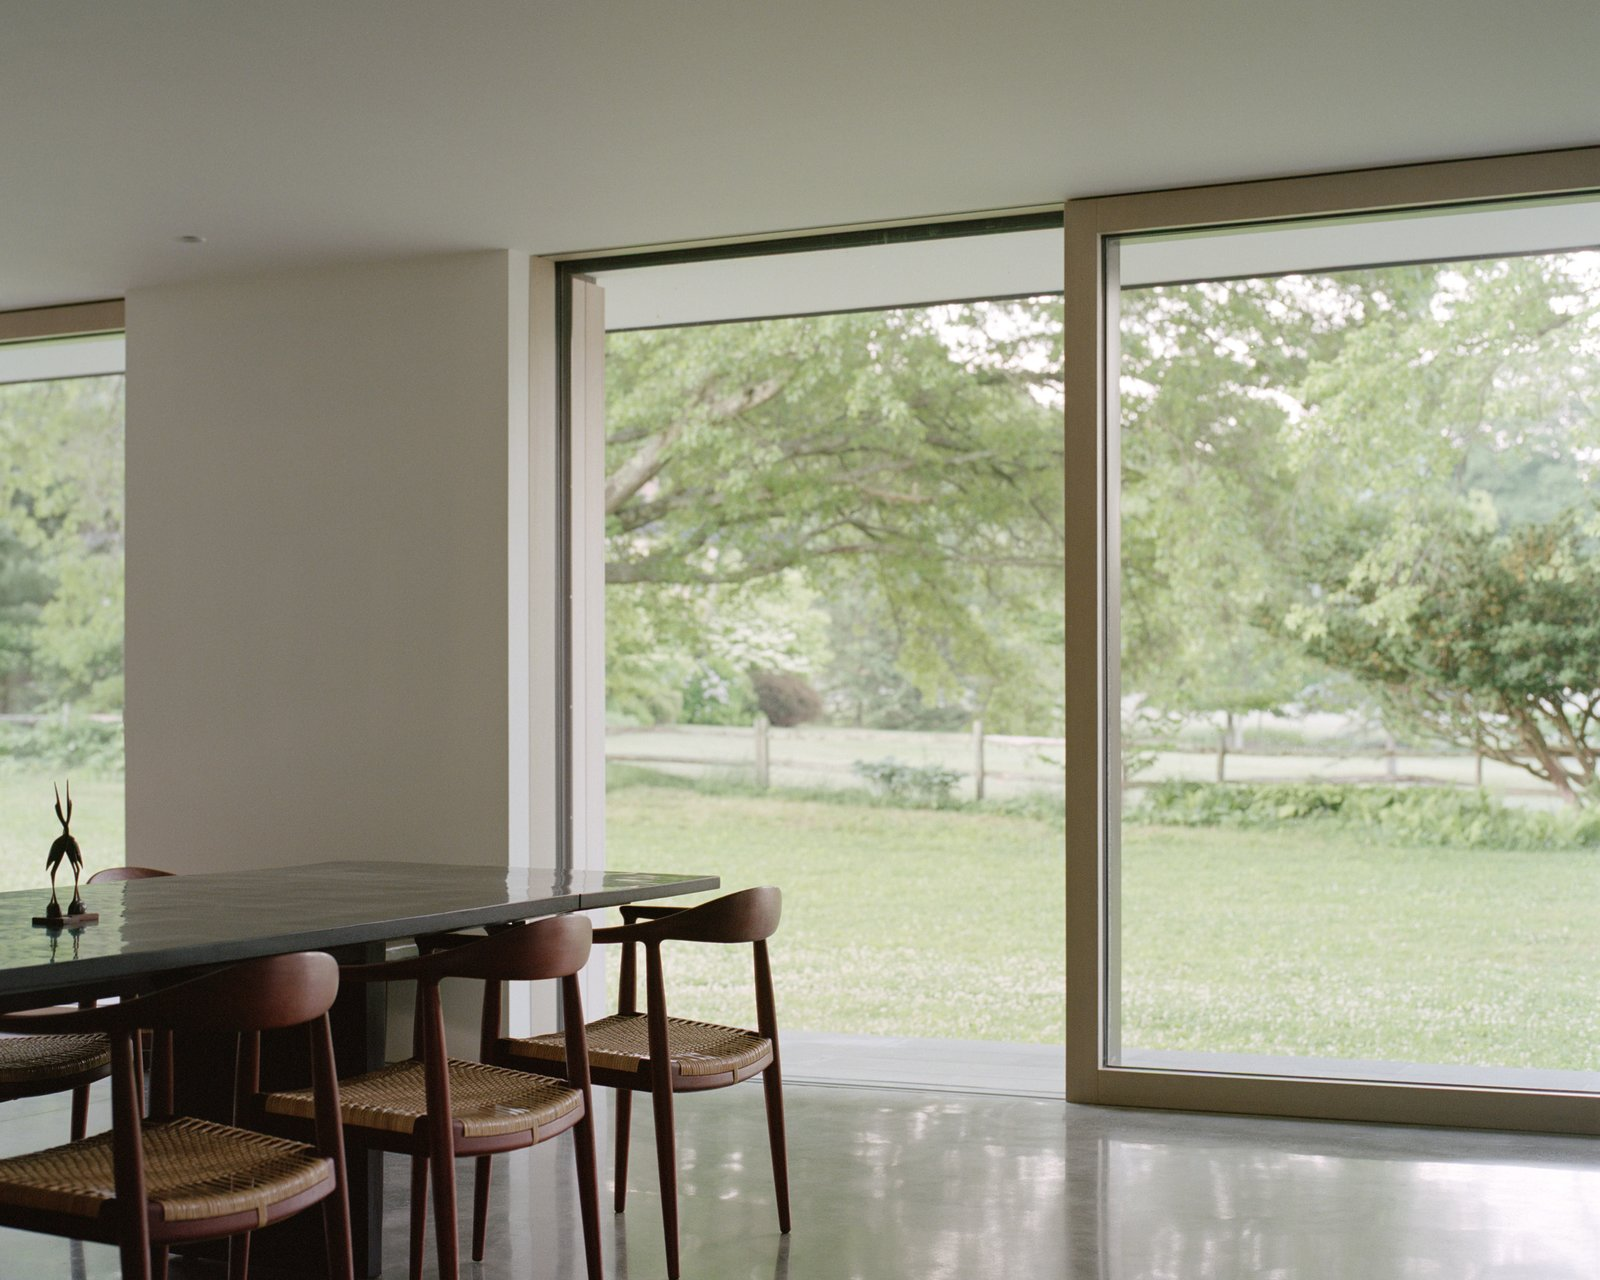 Sheffield residence by Vincent Appel / Of Possible dining room with floor to ceiling windows